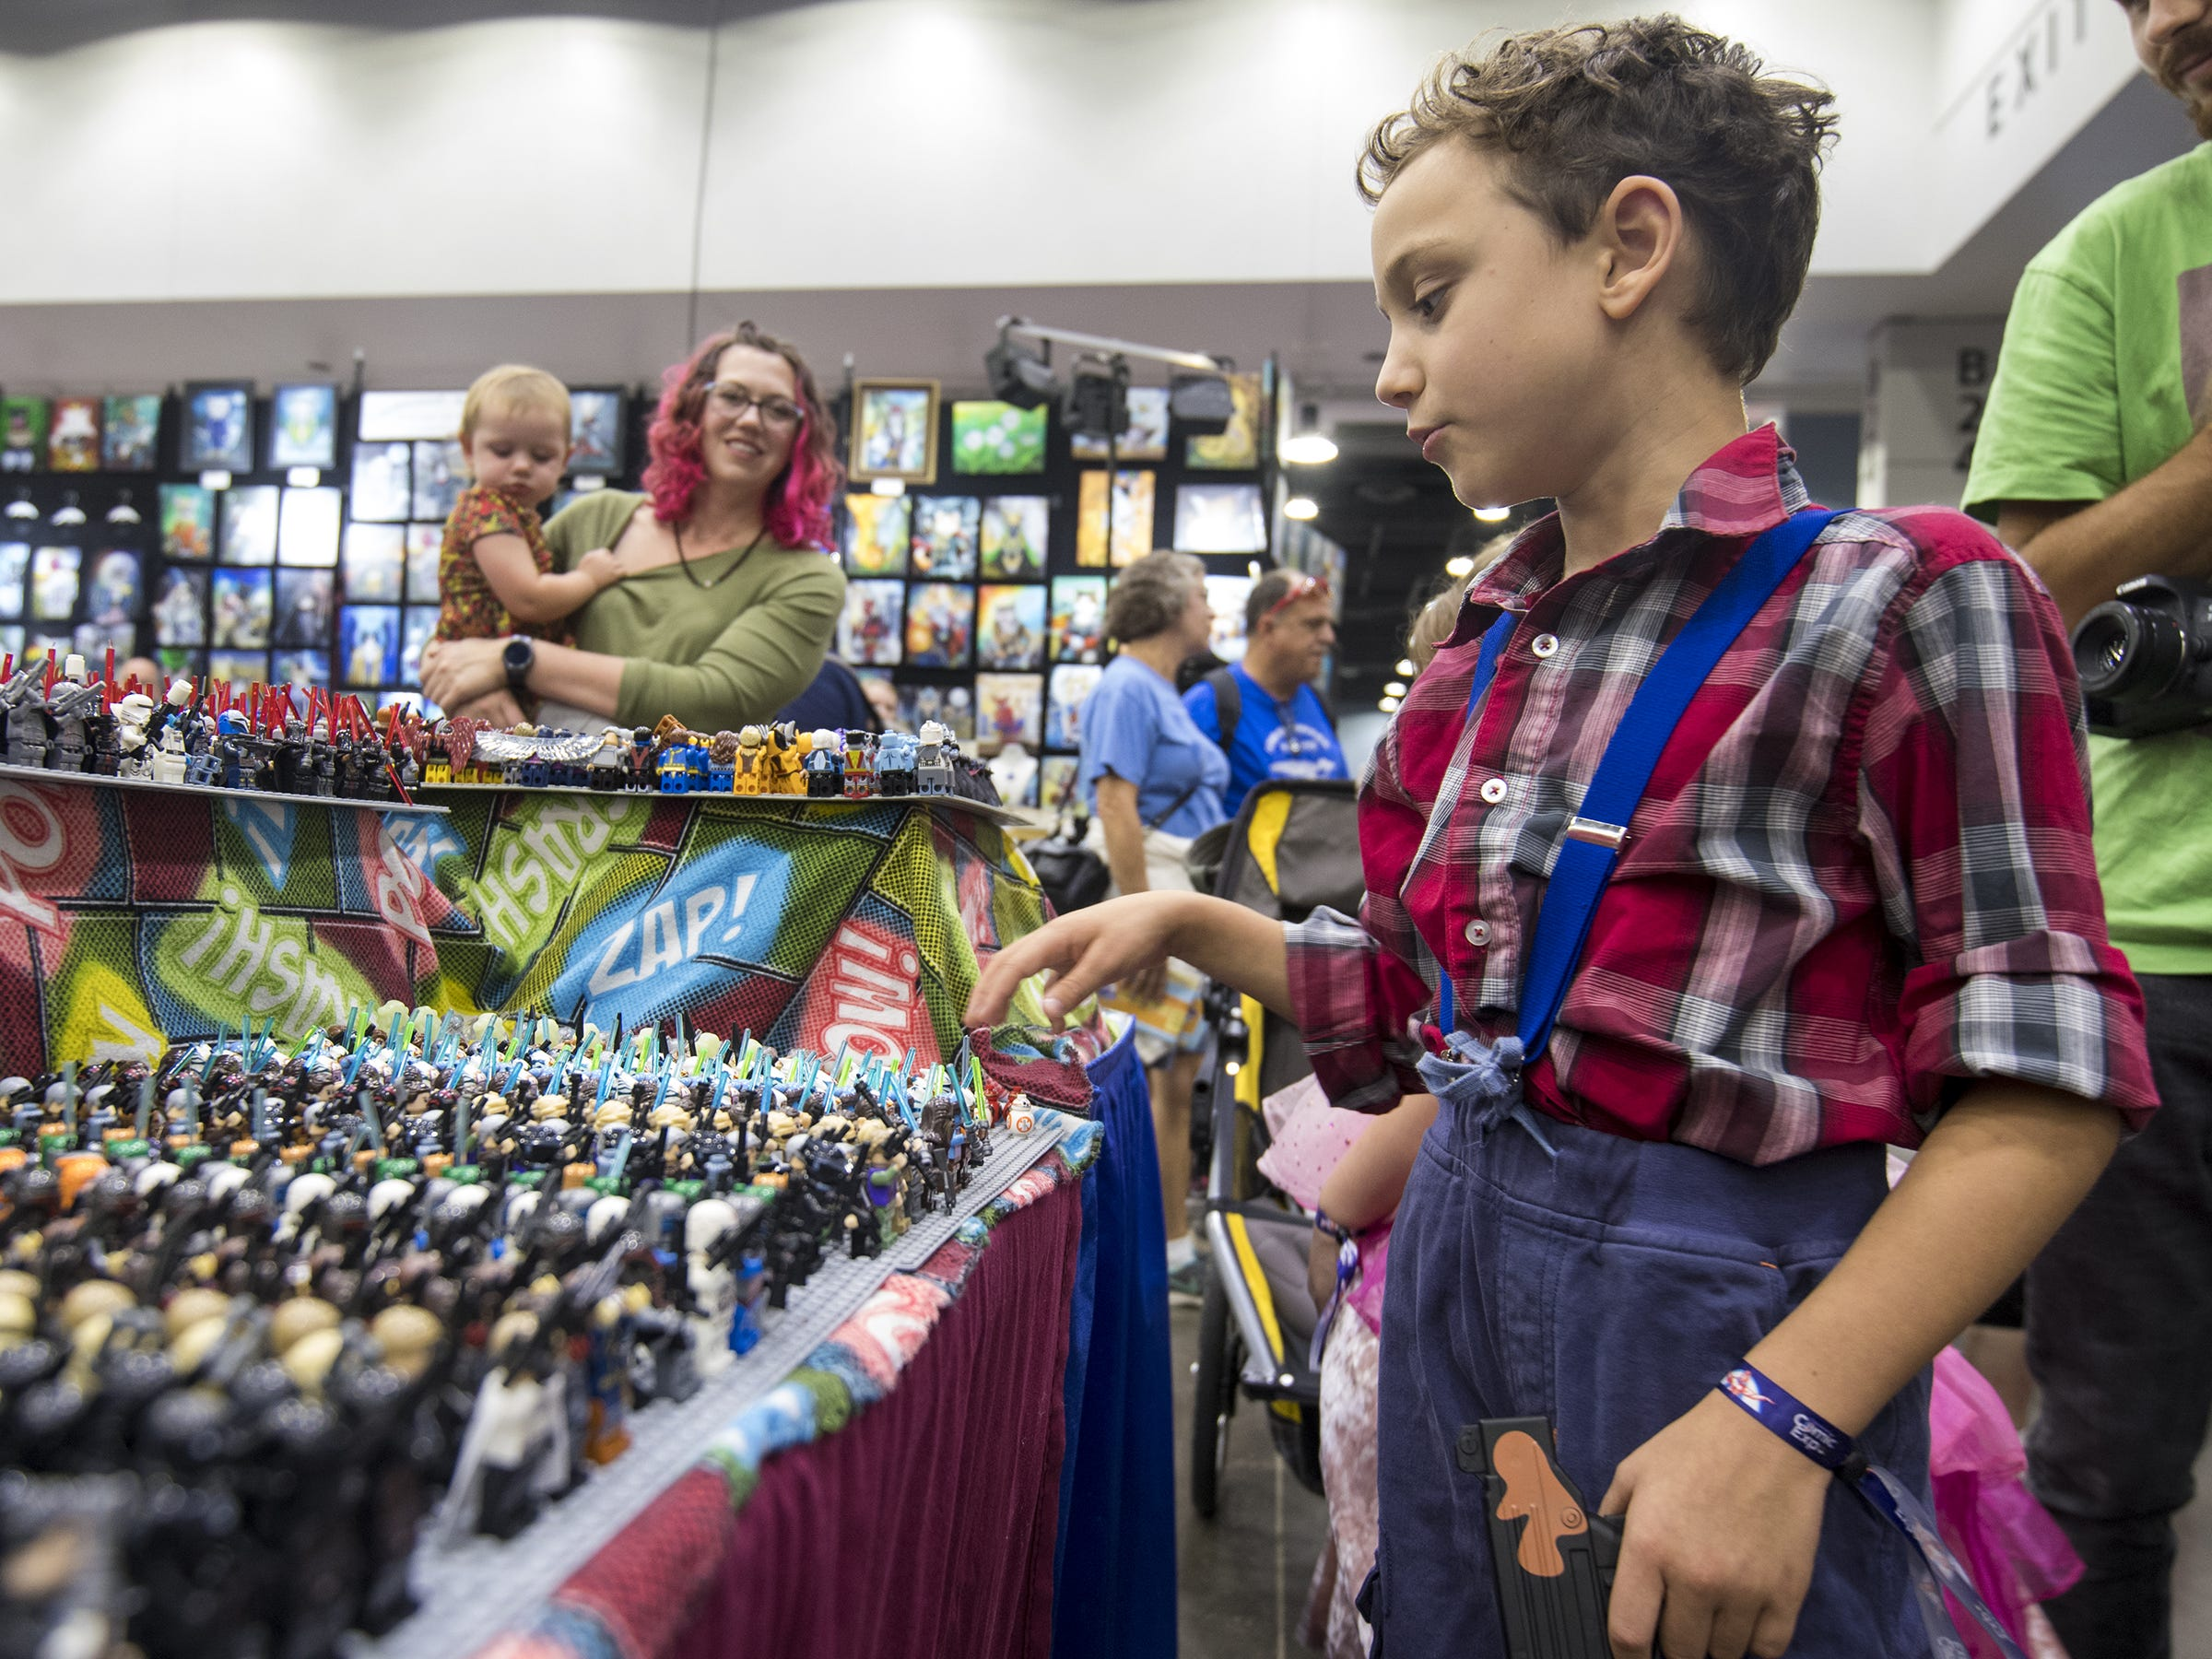 Jack Dudas, 8, of Pleasant Ridge checks out the Lego figures at the Collectible Empire booth.